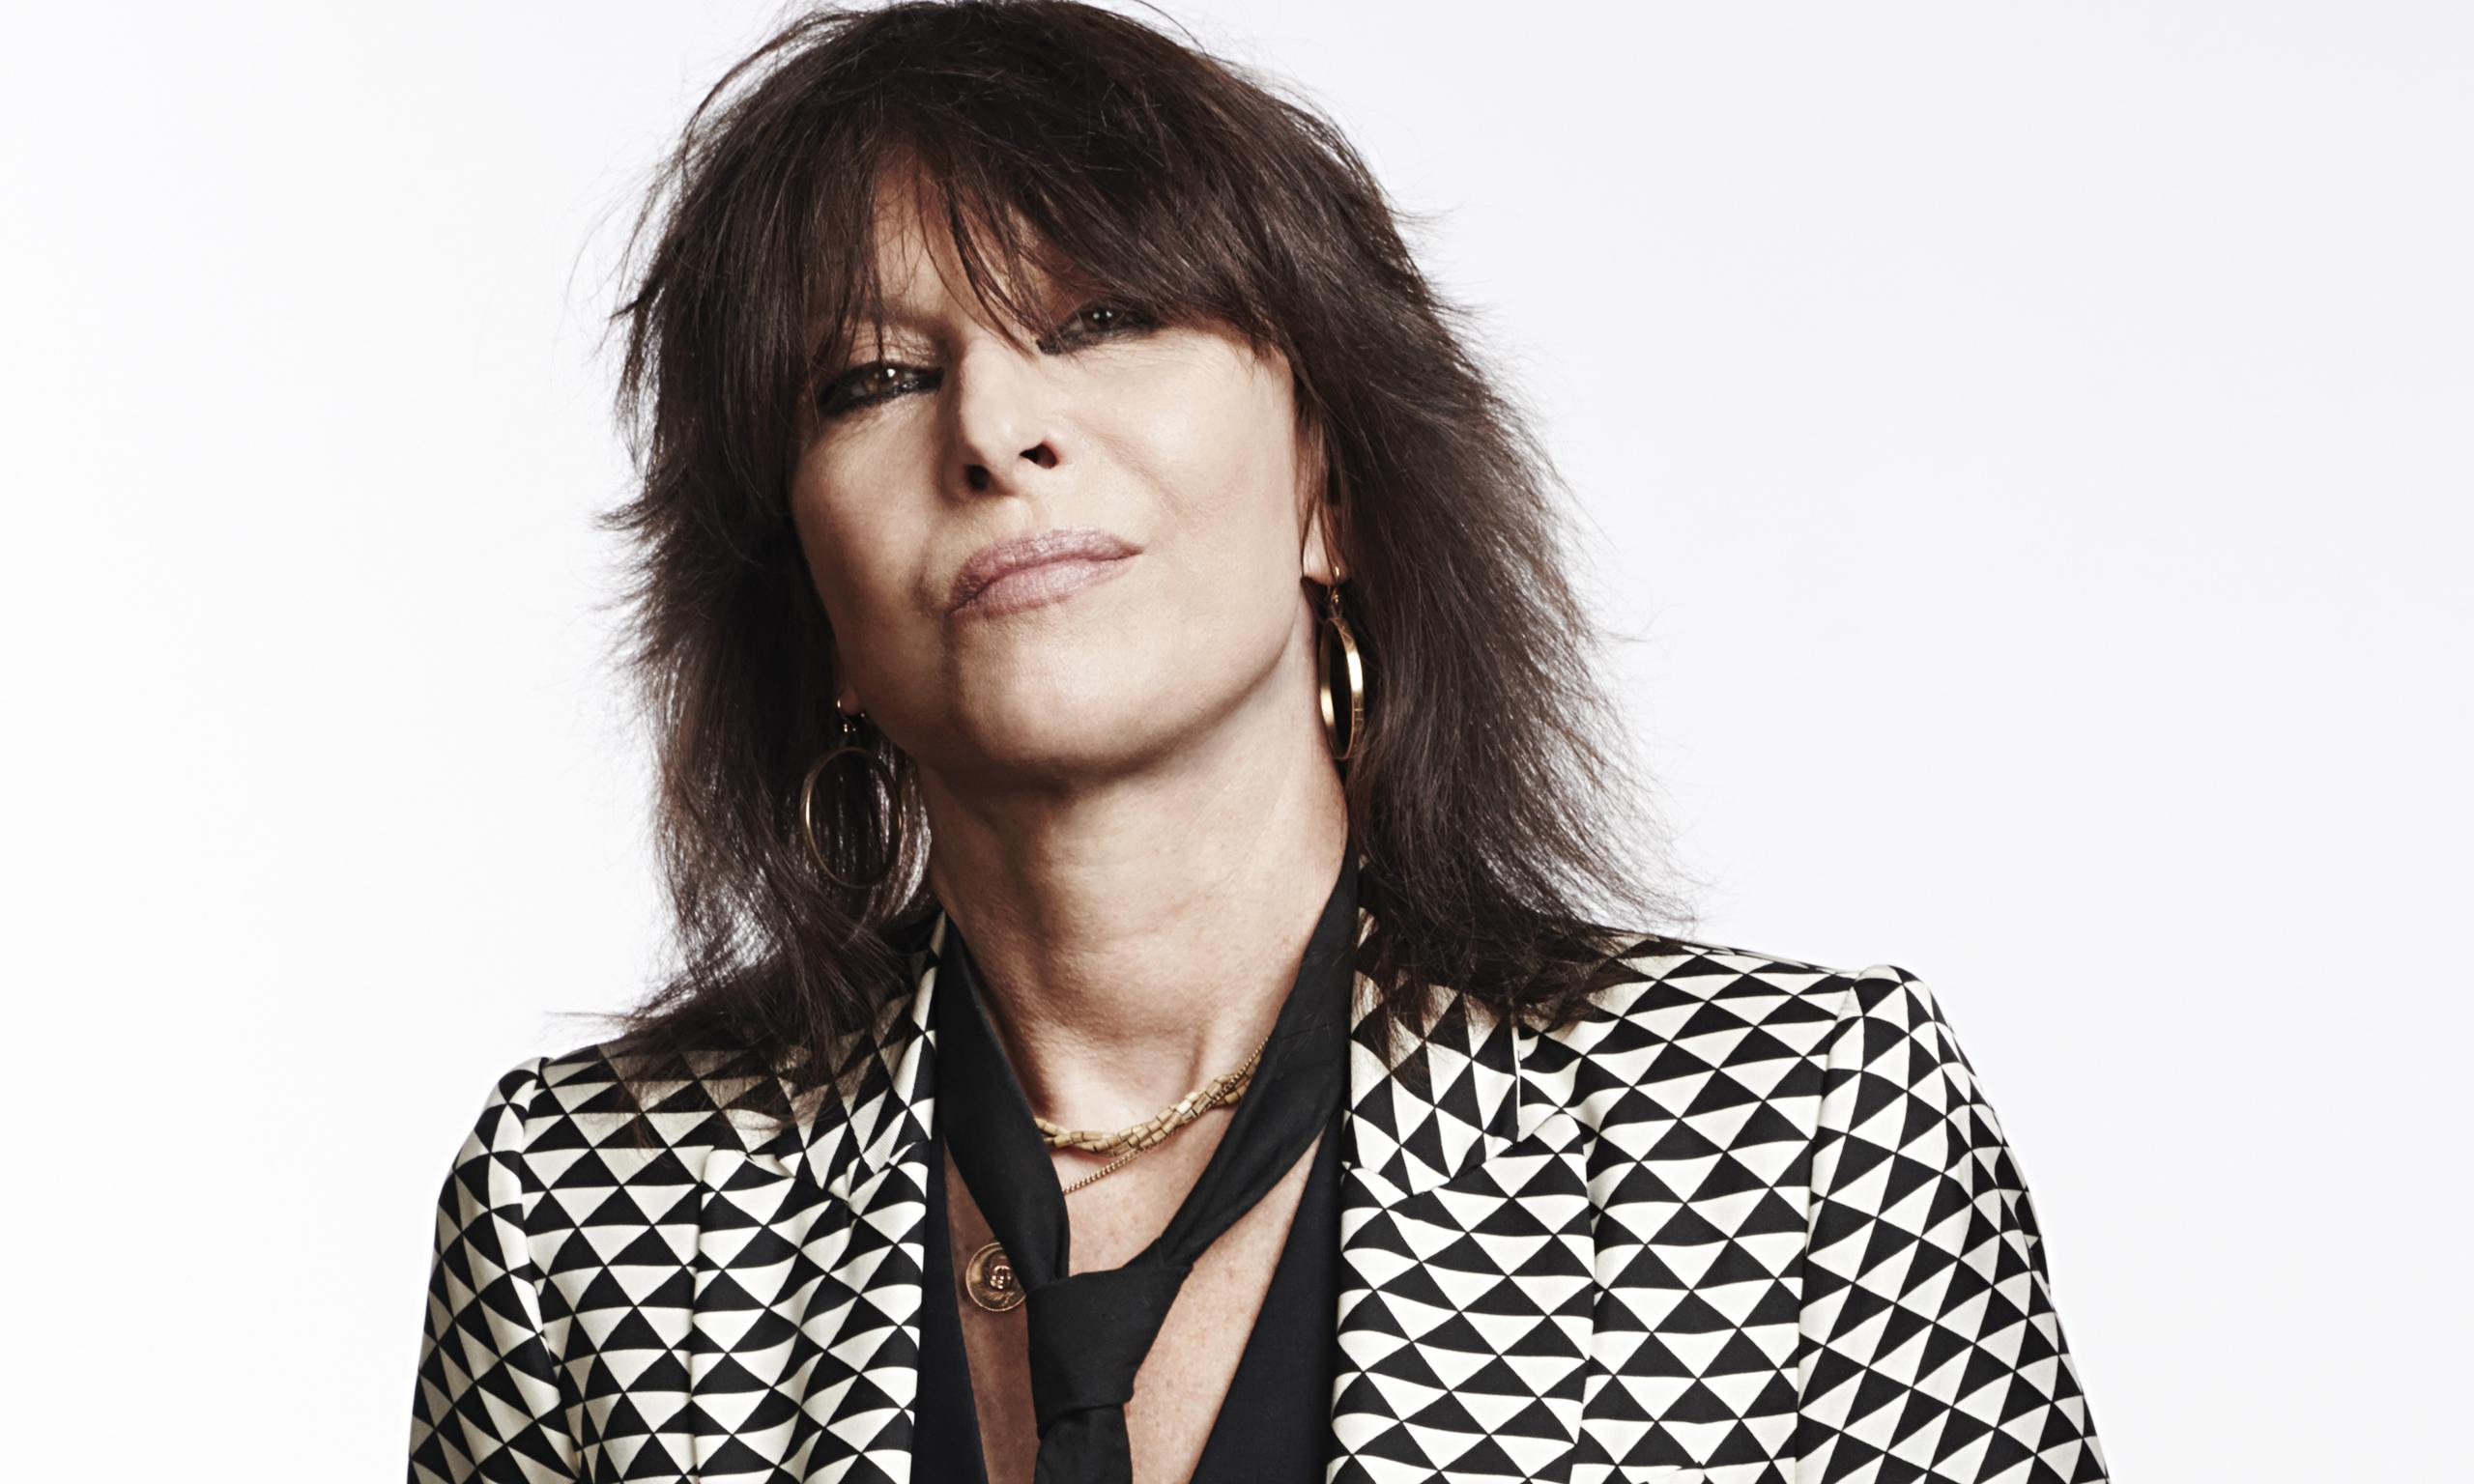 Chrissie Hynde photographed this month for the Observer New Review by Dean Chalkley.